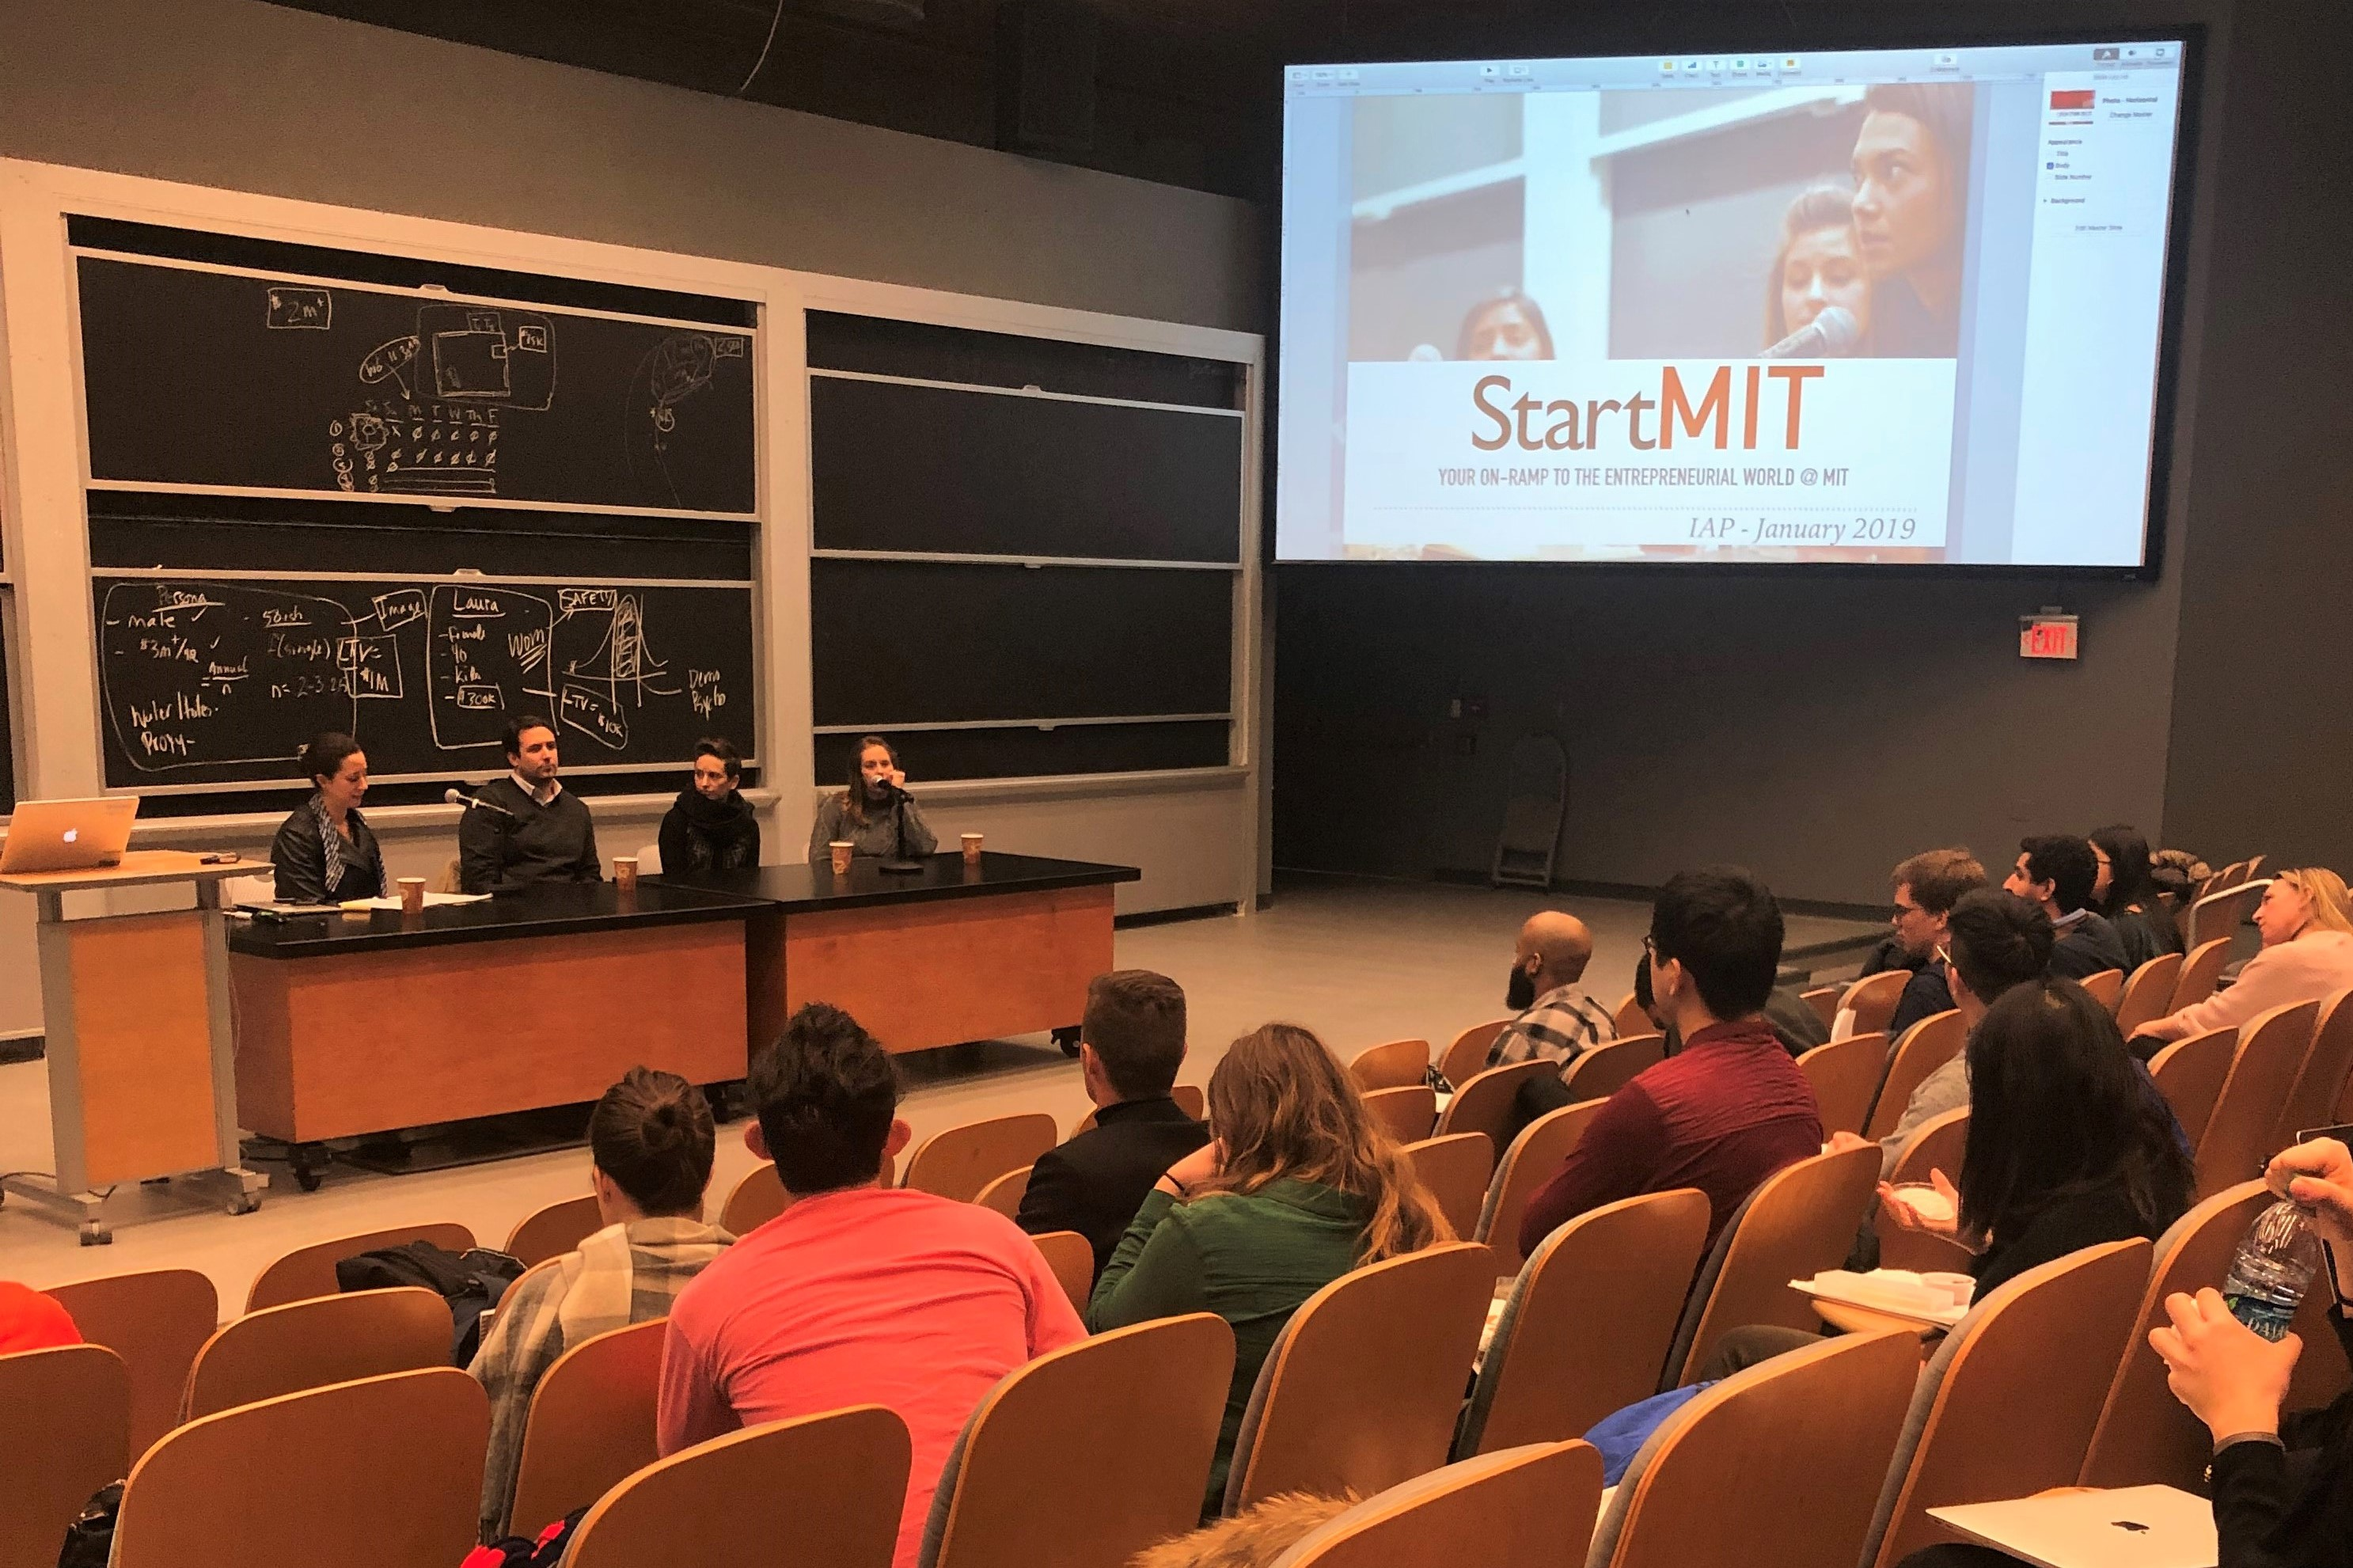 Heather Ames Gives Insight on Entrepreneurship at StartMIT